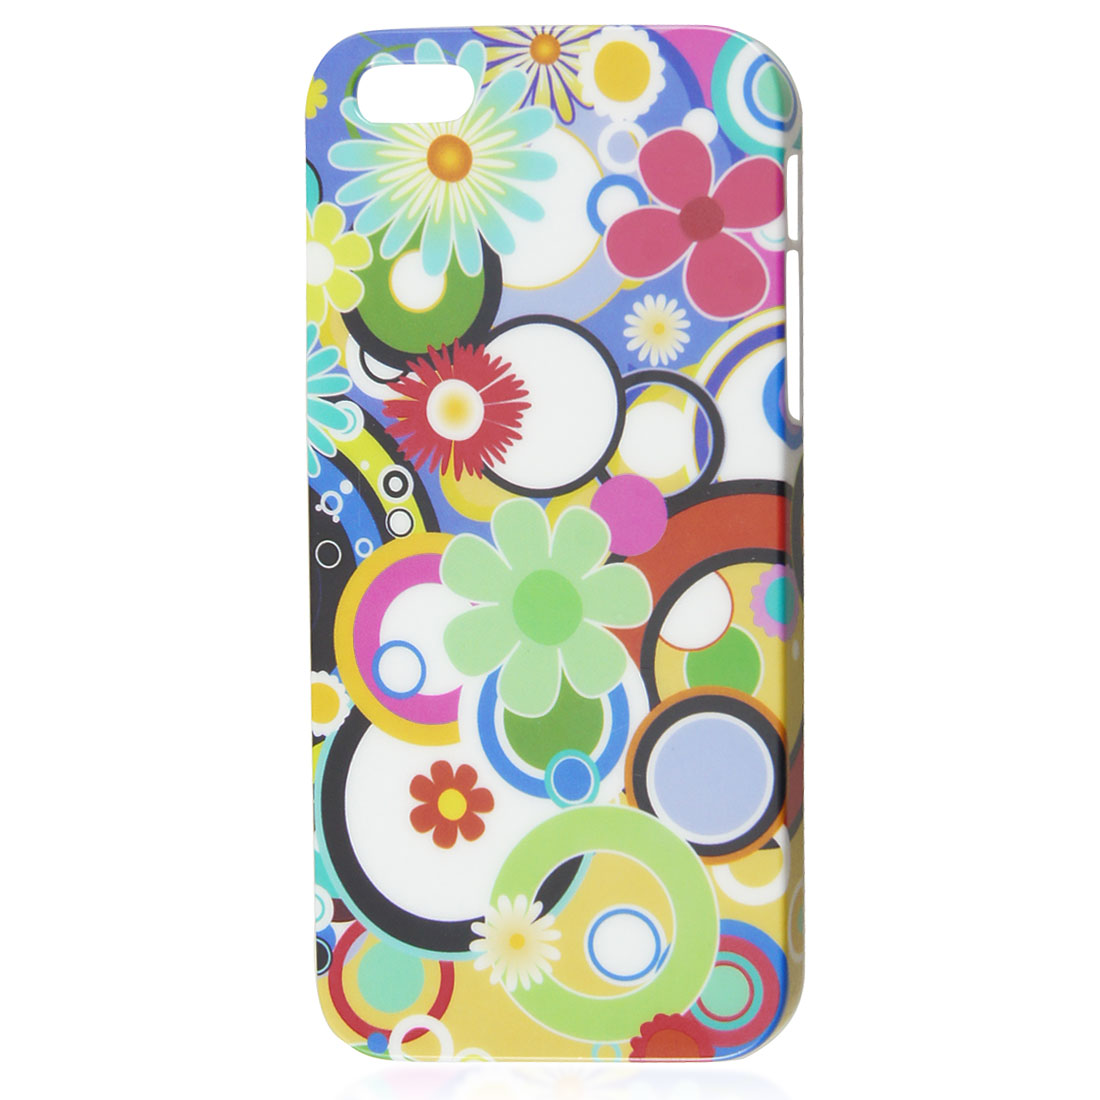 Colorful Sun Flowers IMD Hard Back Case Skin Cover for Apple iPhone 5 5G